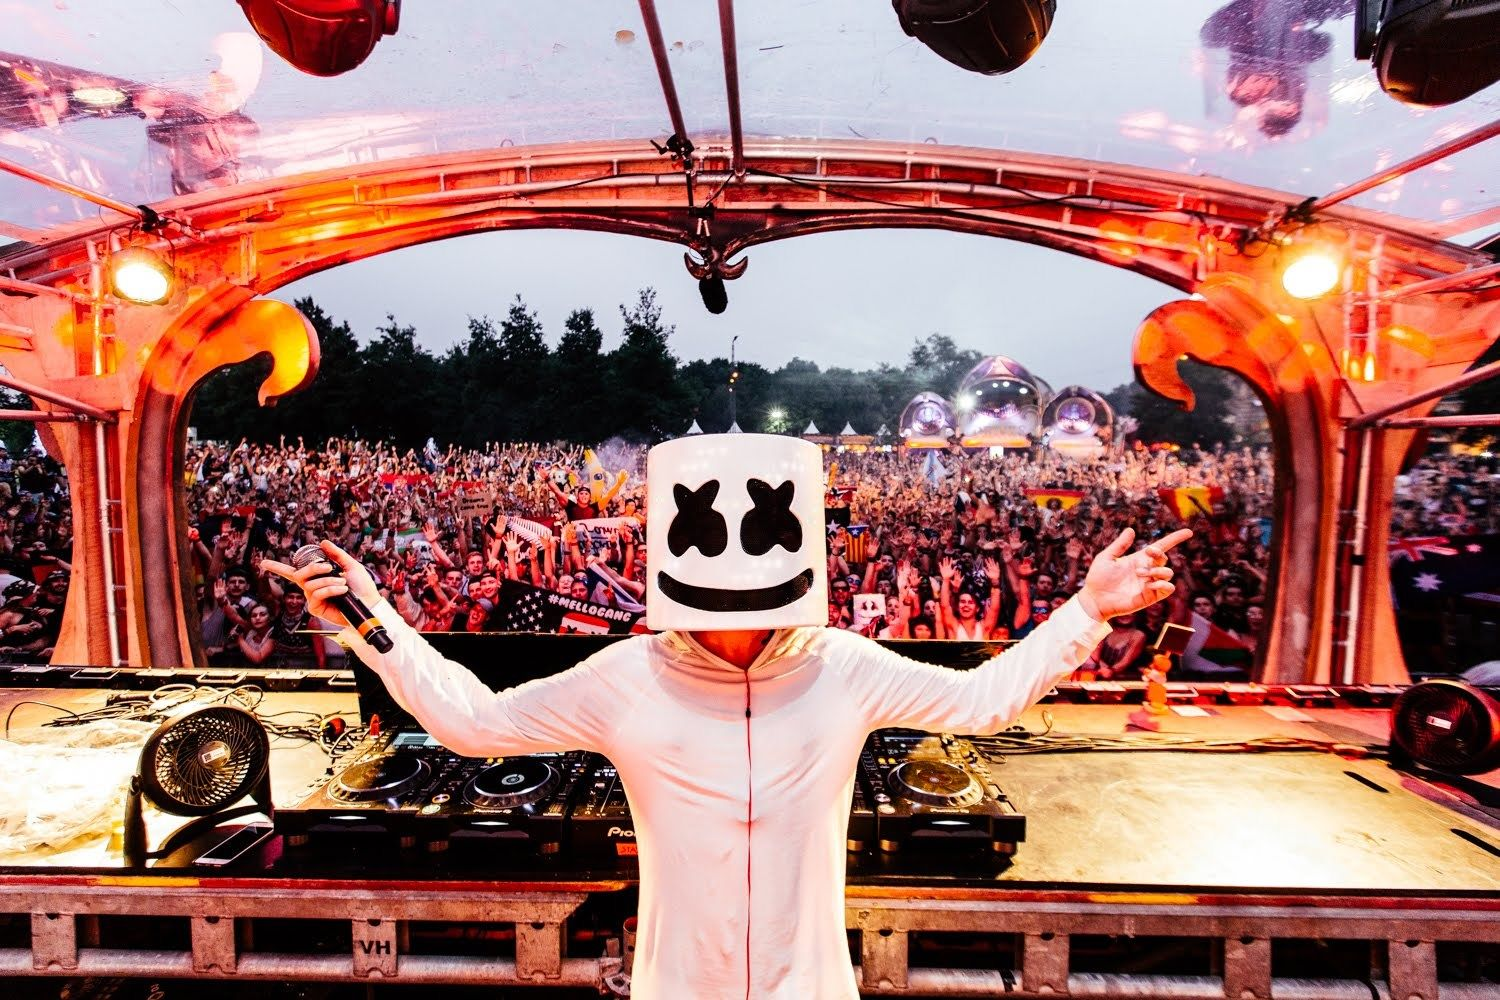 hd marshmello wallpapers Marshmello, Marshmello